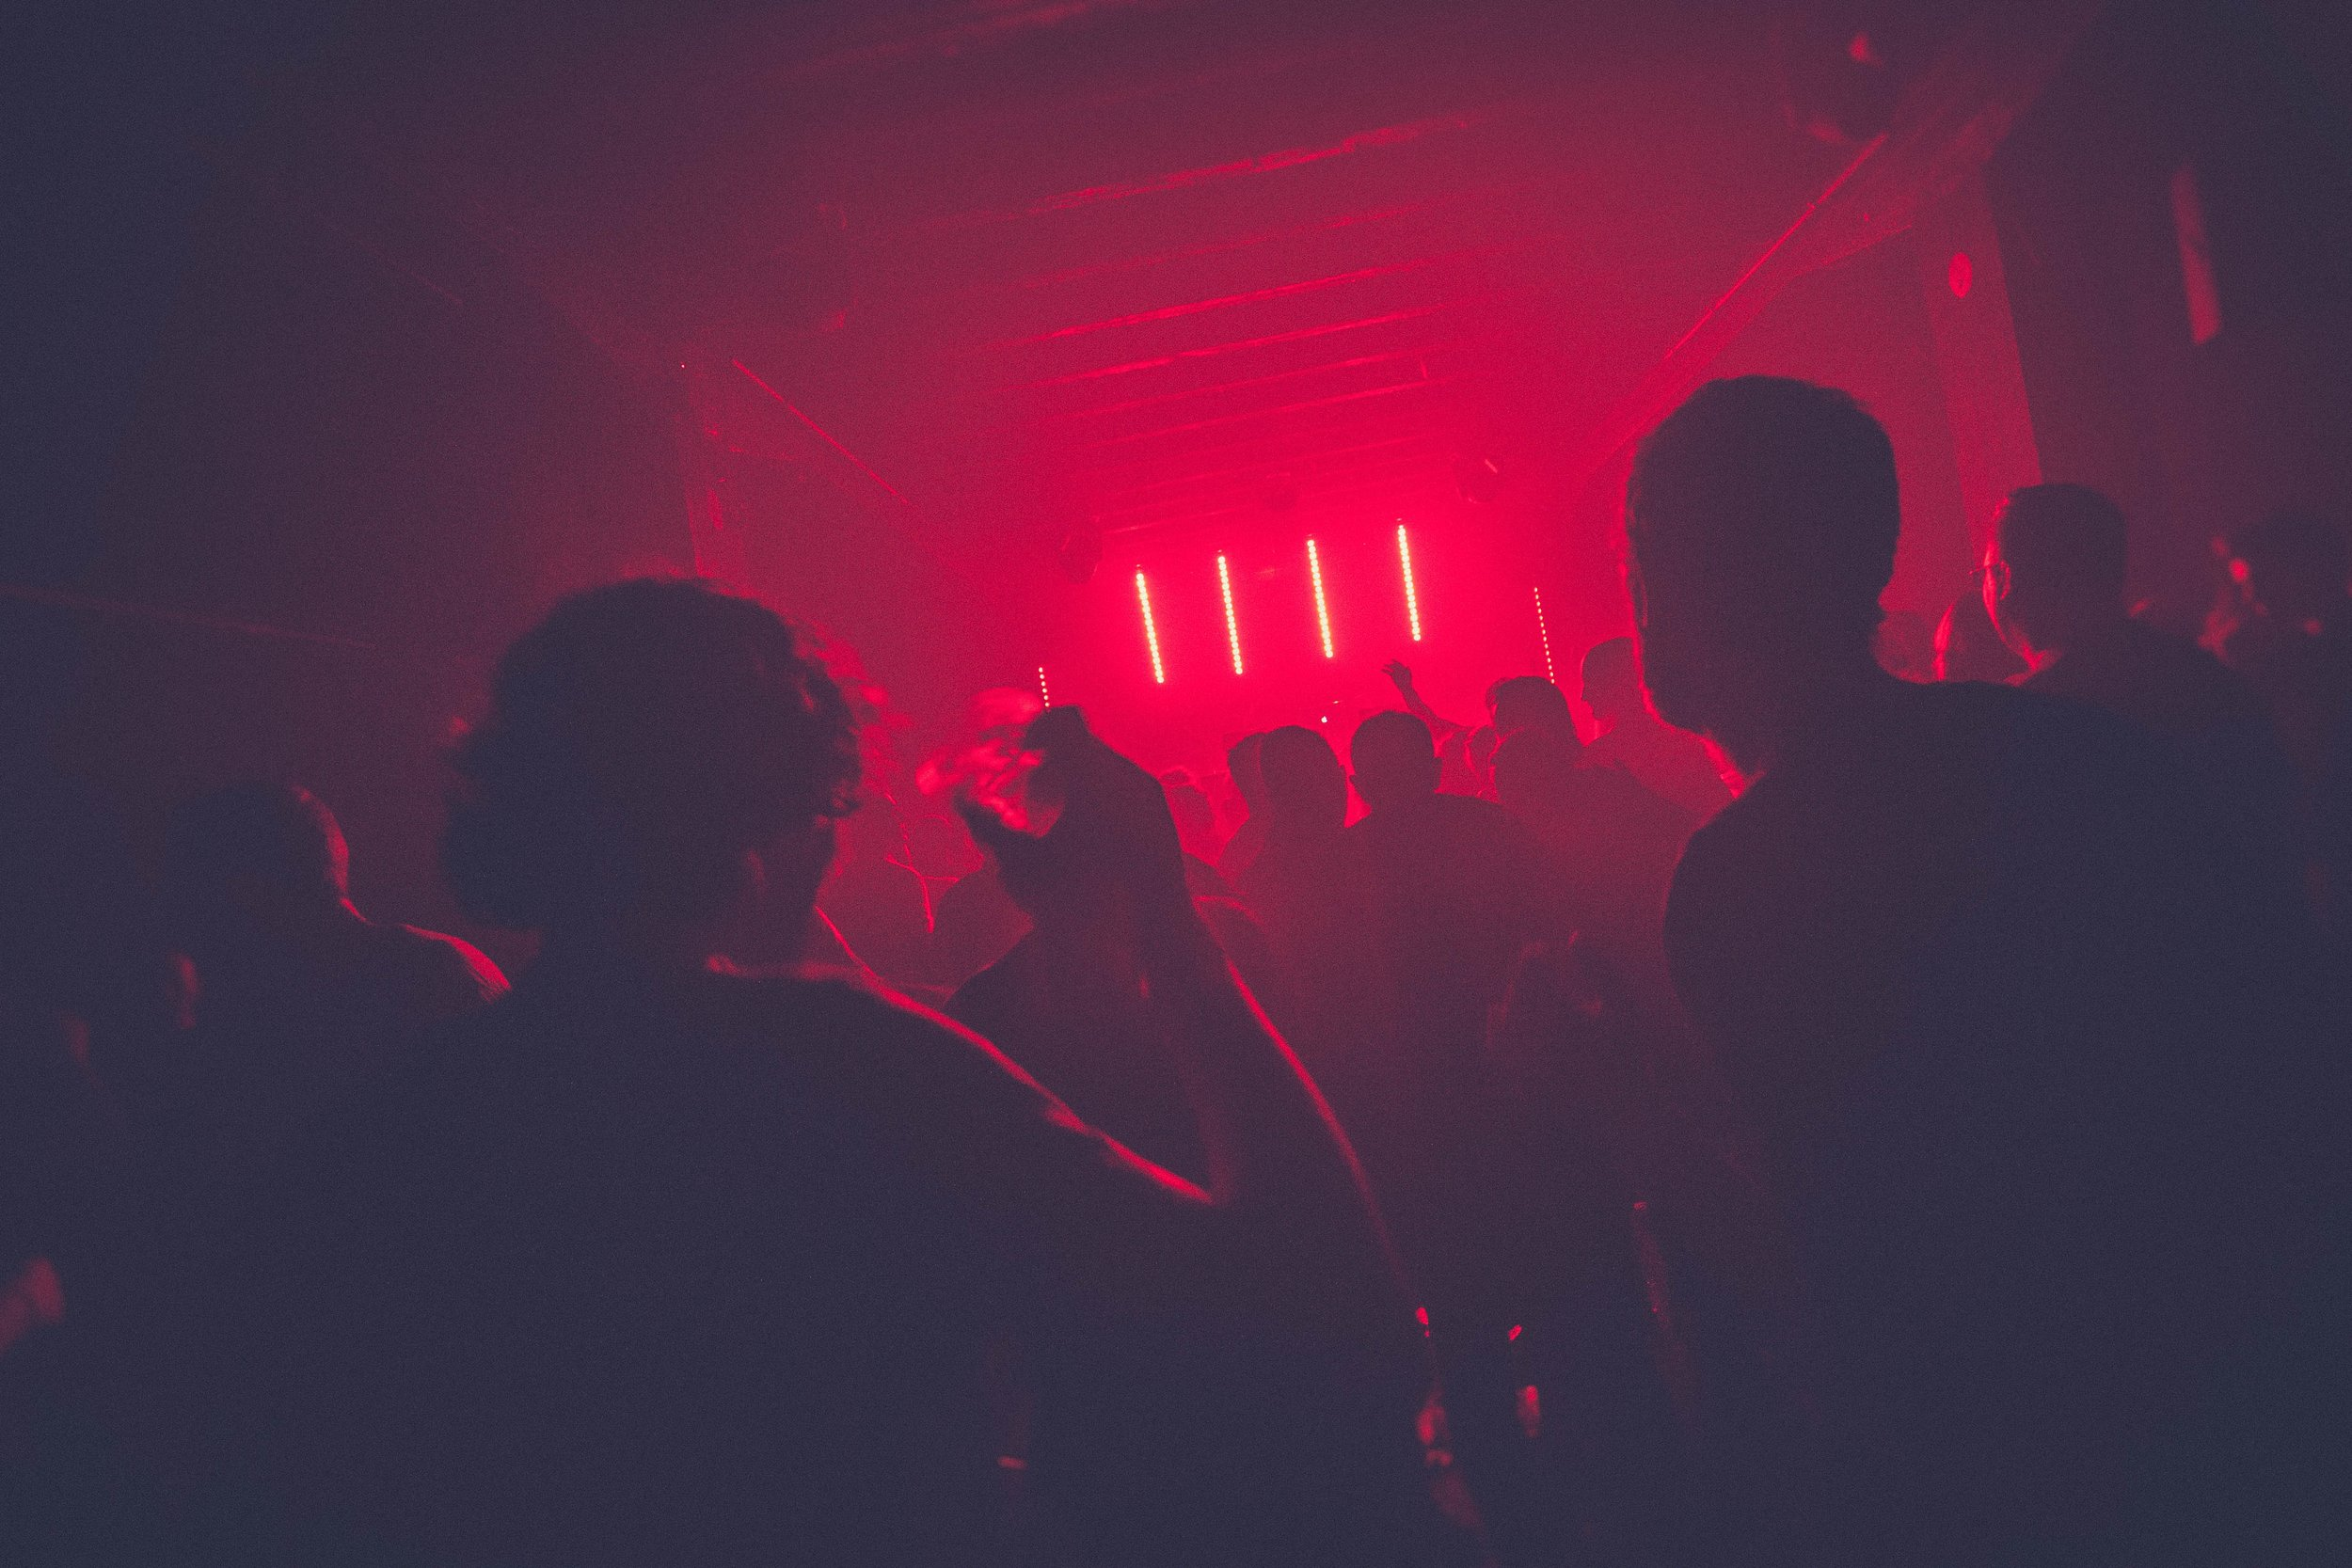 nightclub with dim red lighting filled with people